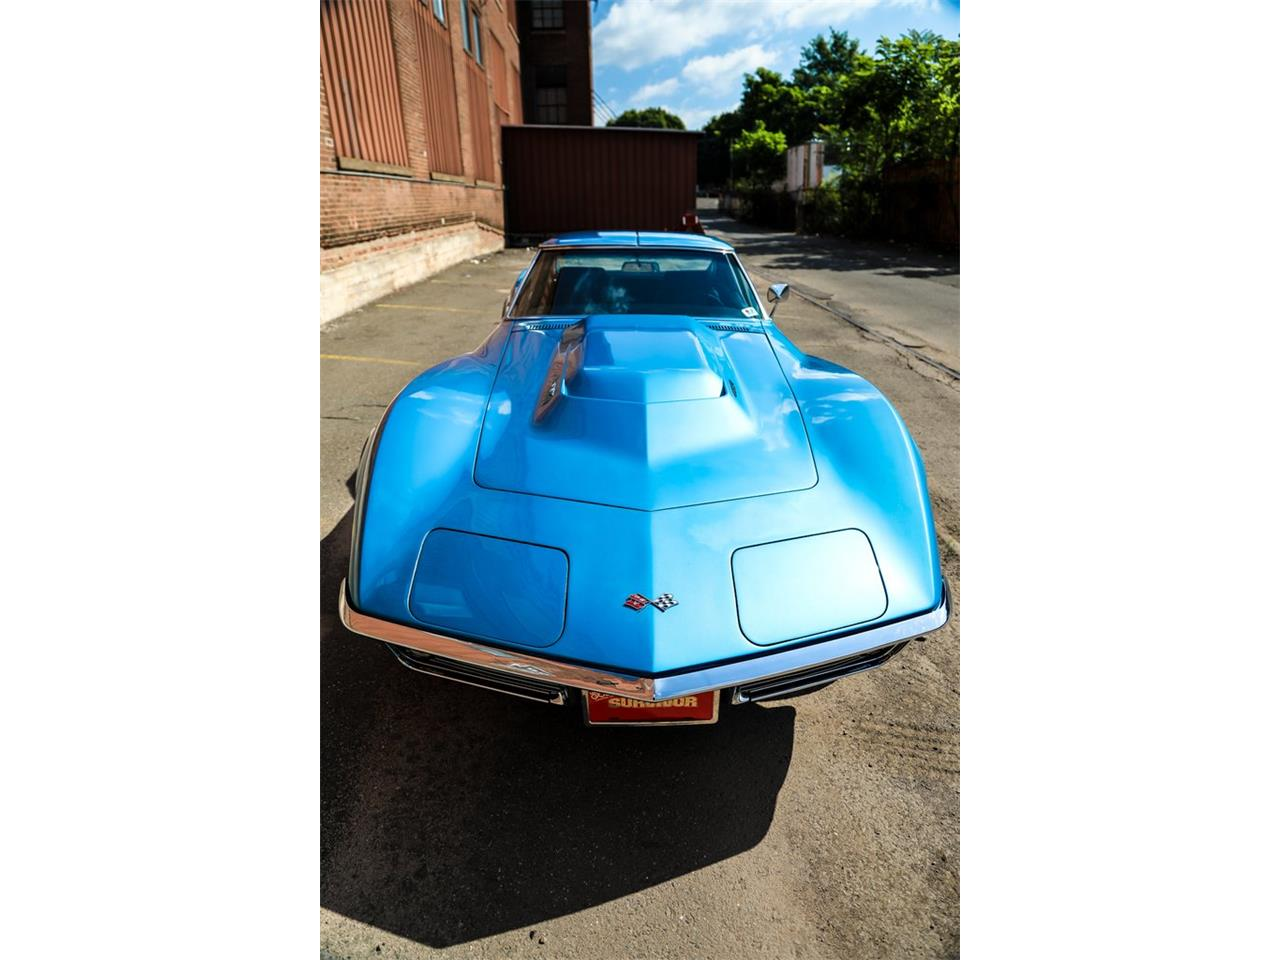 1969 Chevrolet Corvette for sale in Wallingford, CT – photo 73